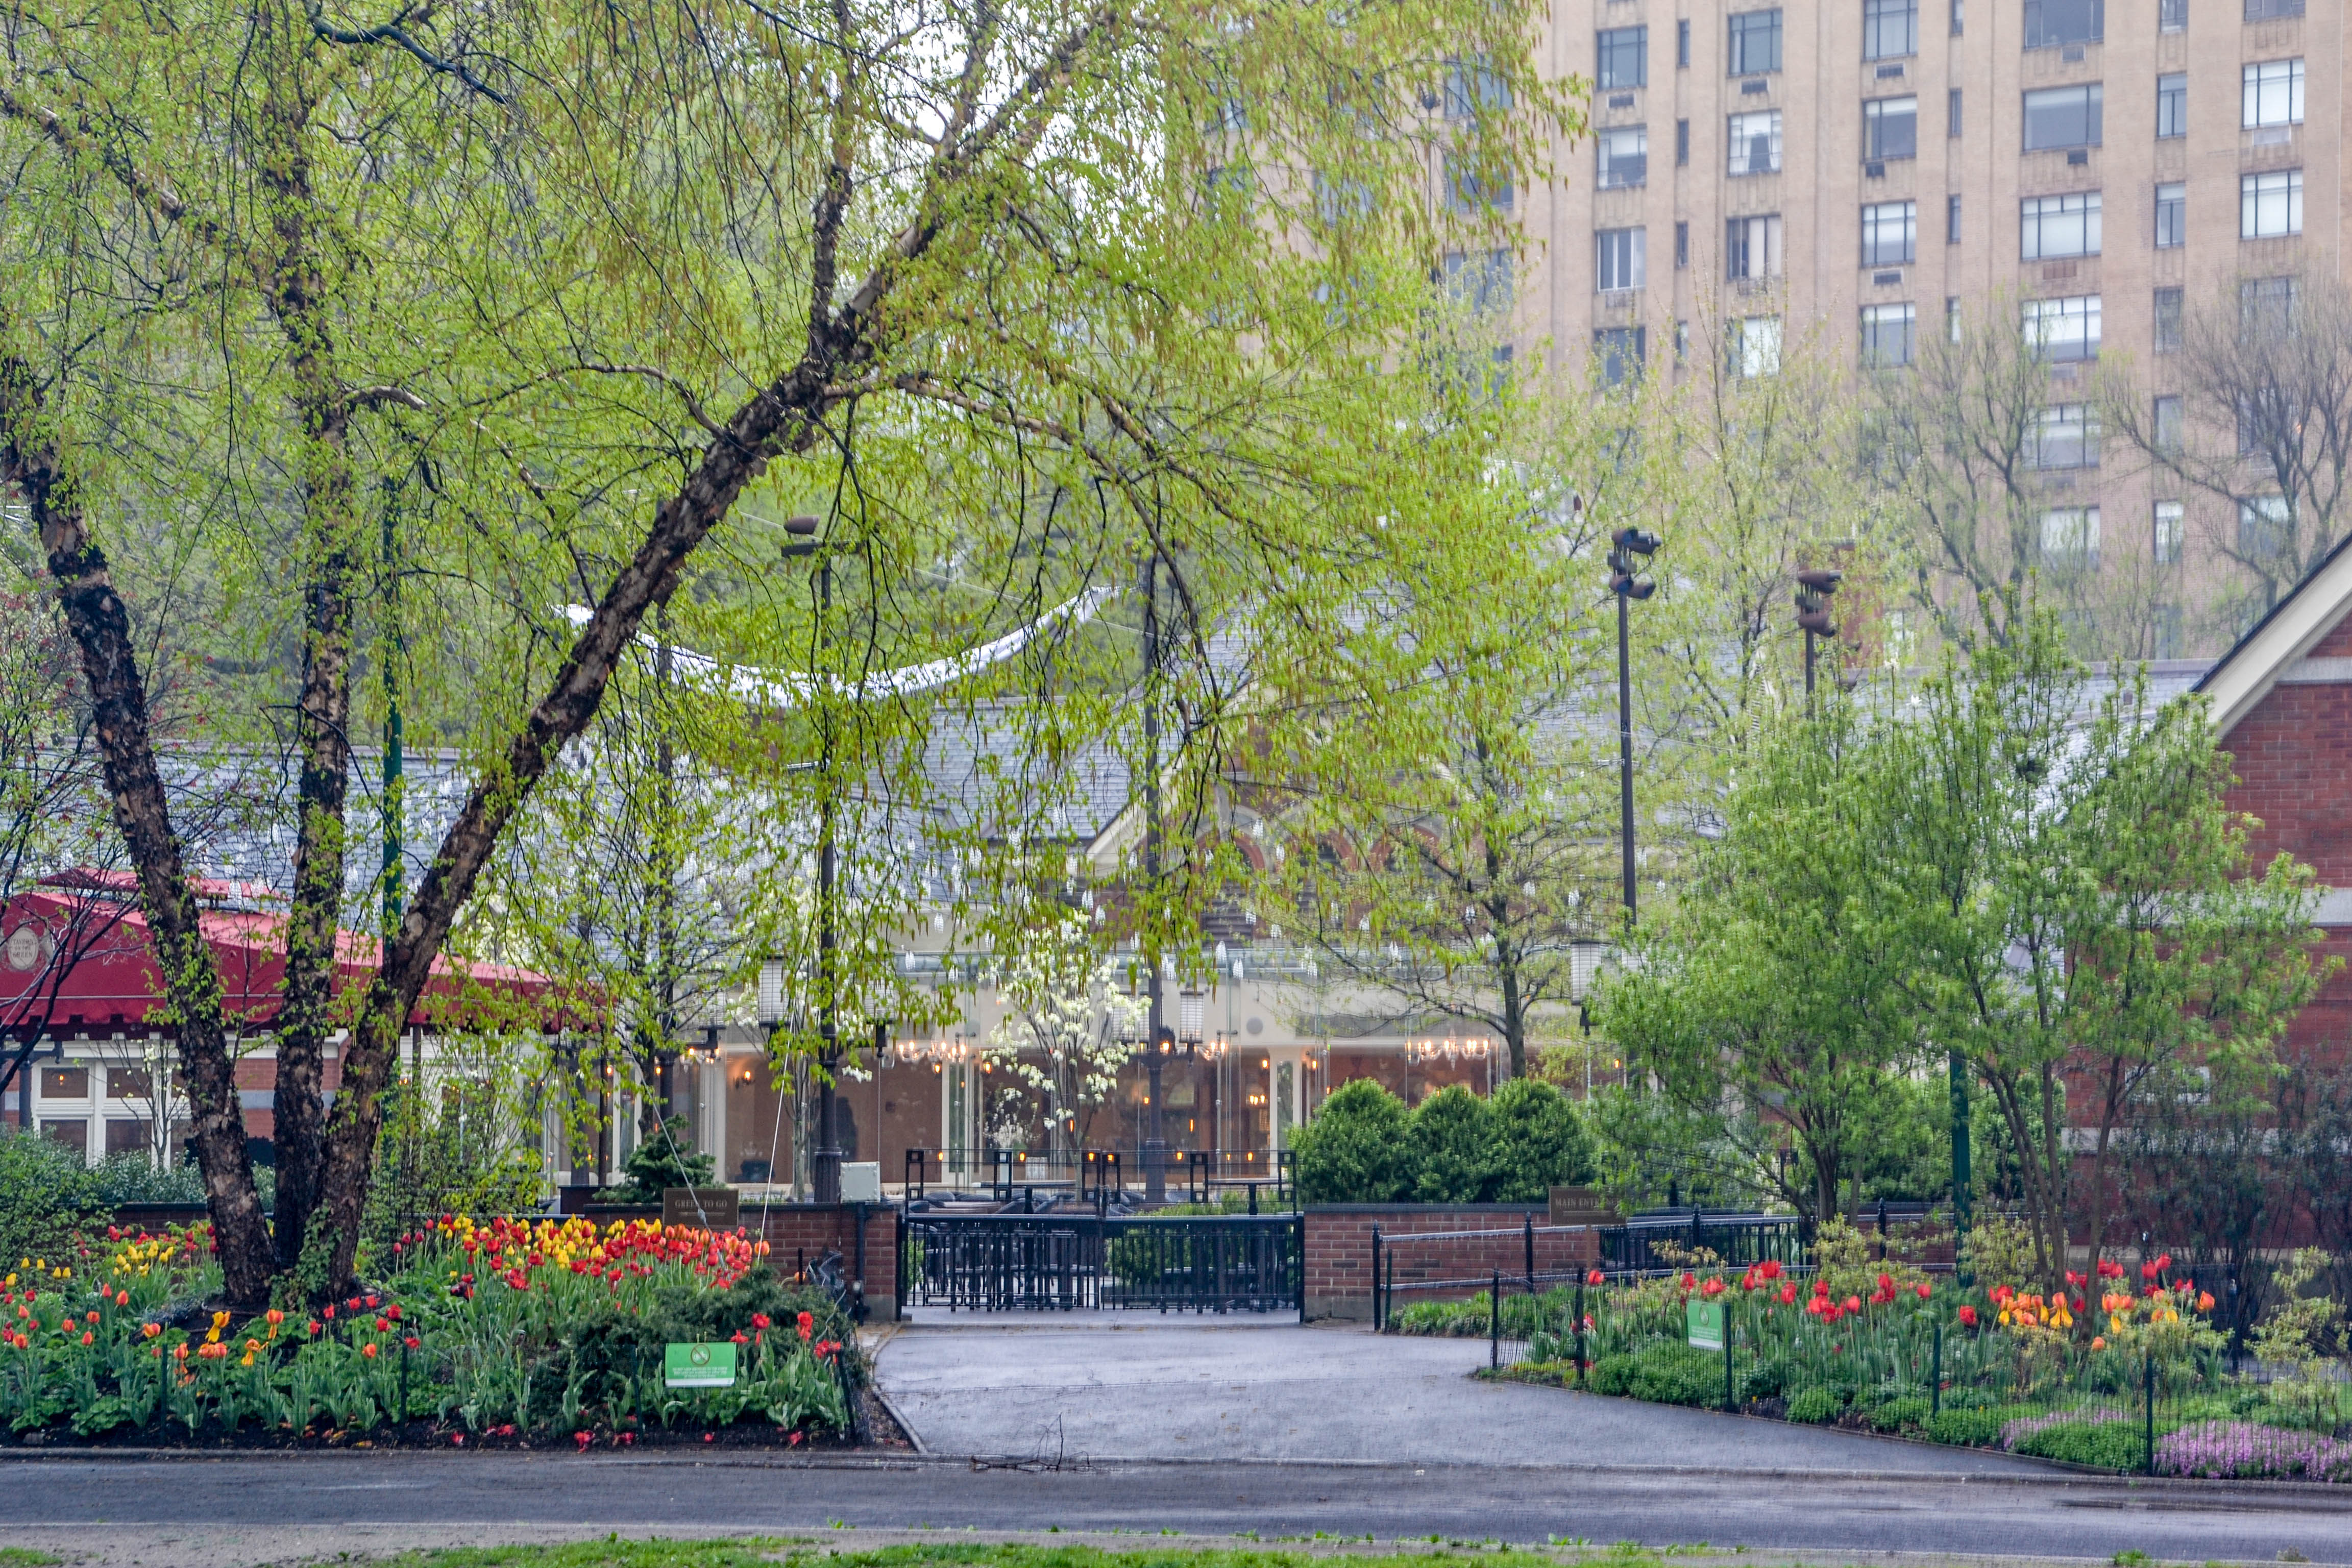 Central Park, New York, Tavern on the Green